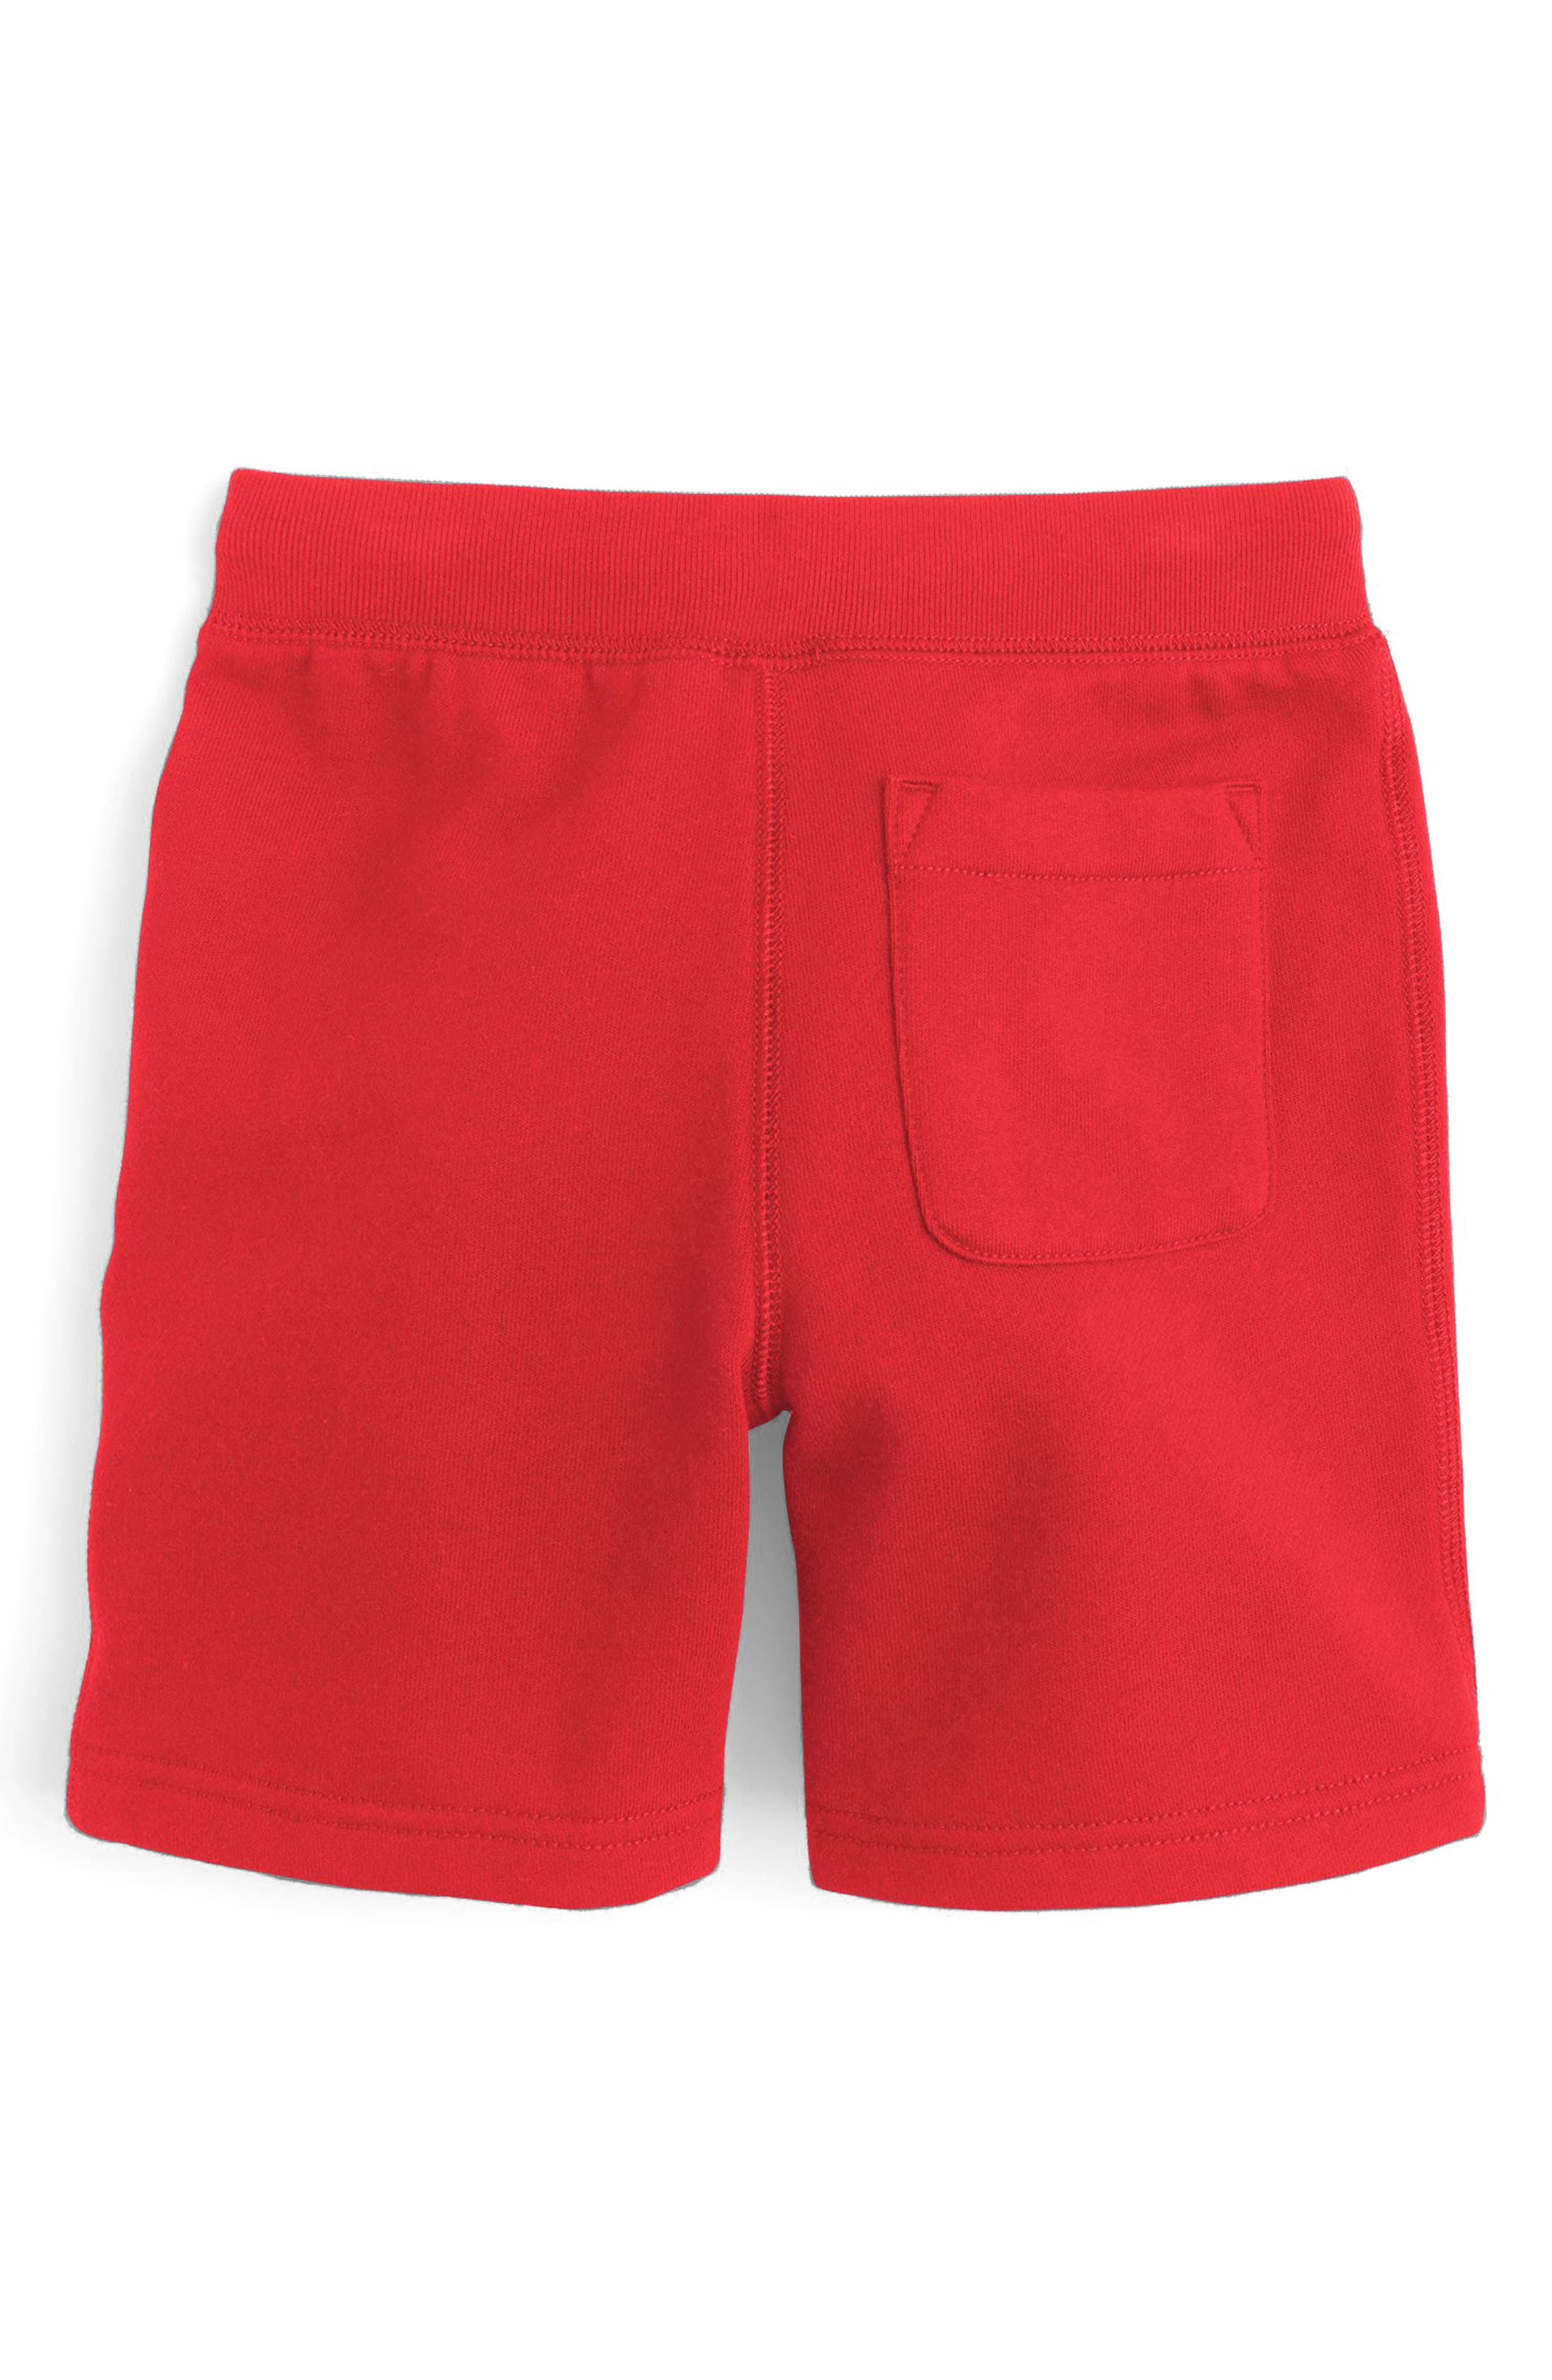 Classic Sweat Shorts,                             Alternate thumbnail 2, color,                             Milan Red